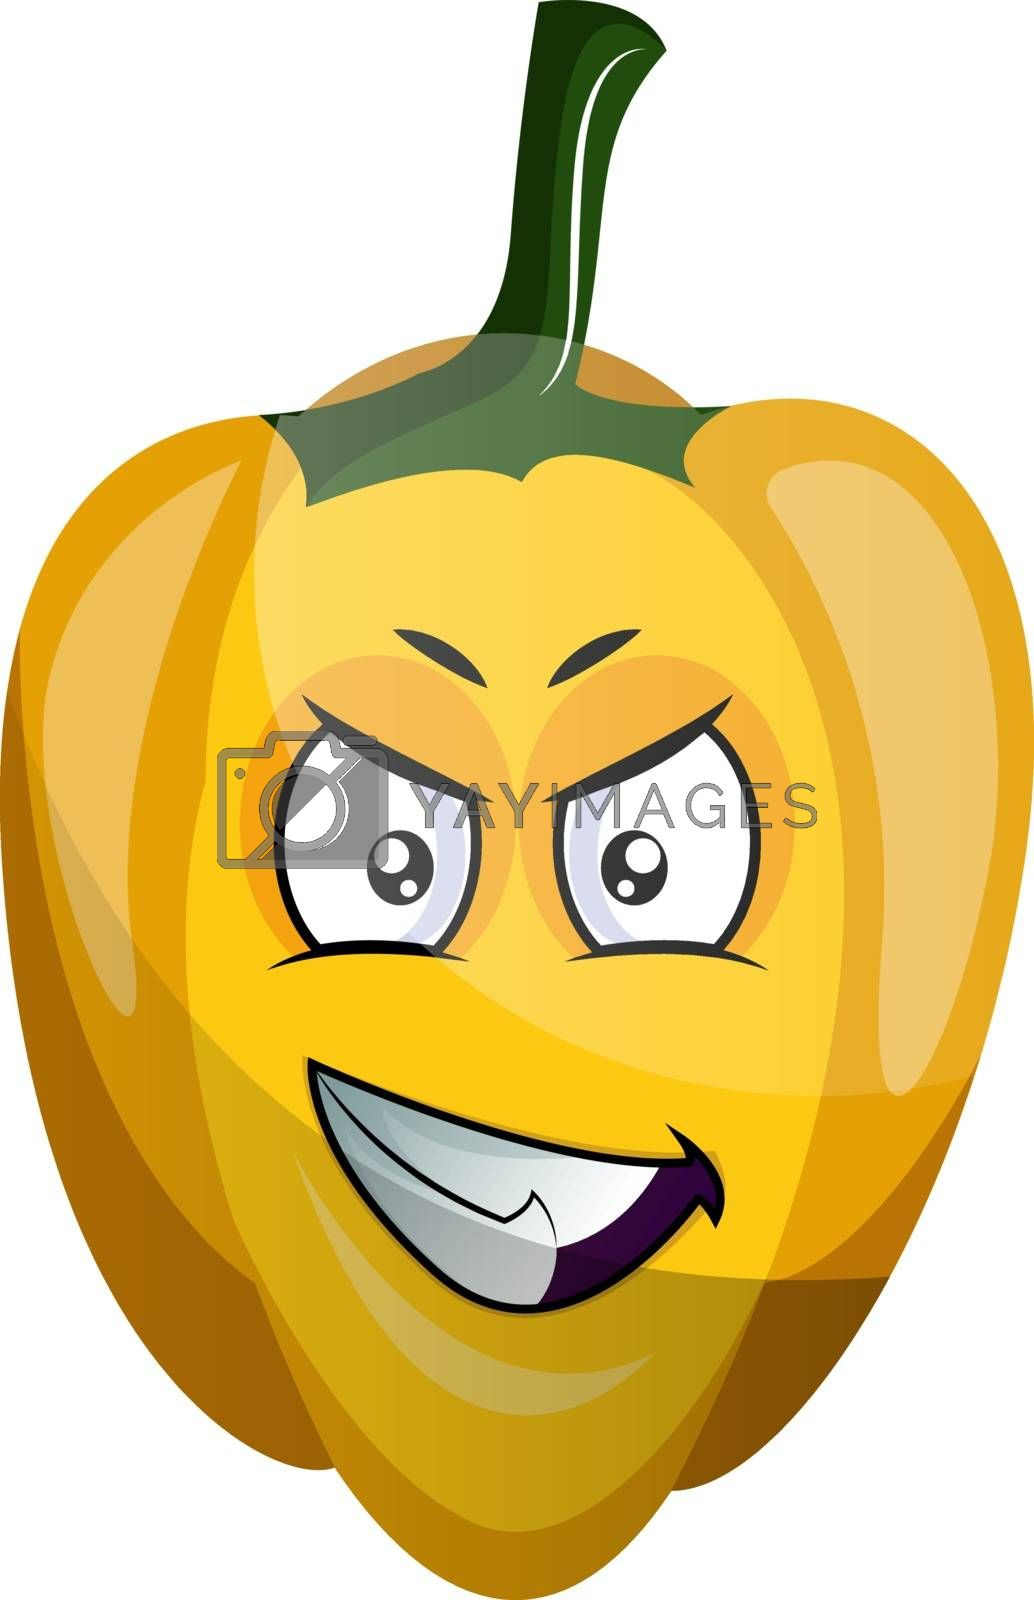 Royalty free image of Evil capsicum illustration vector on white background by Morphart